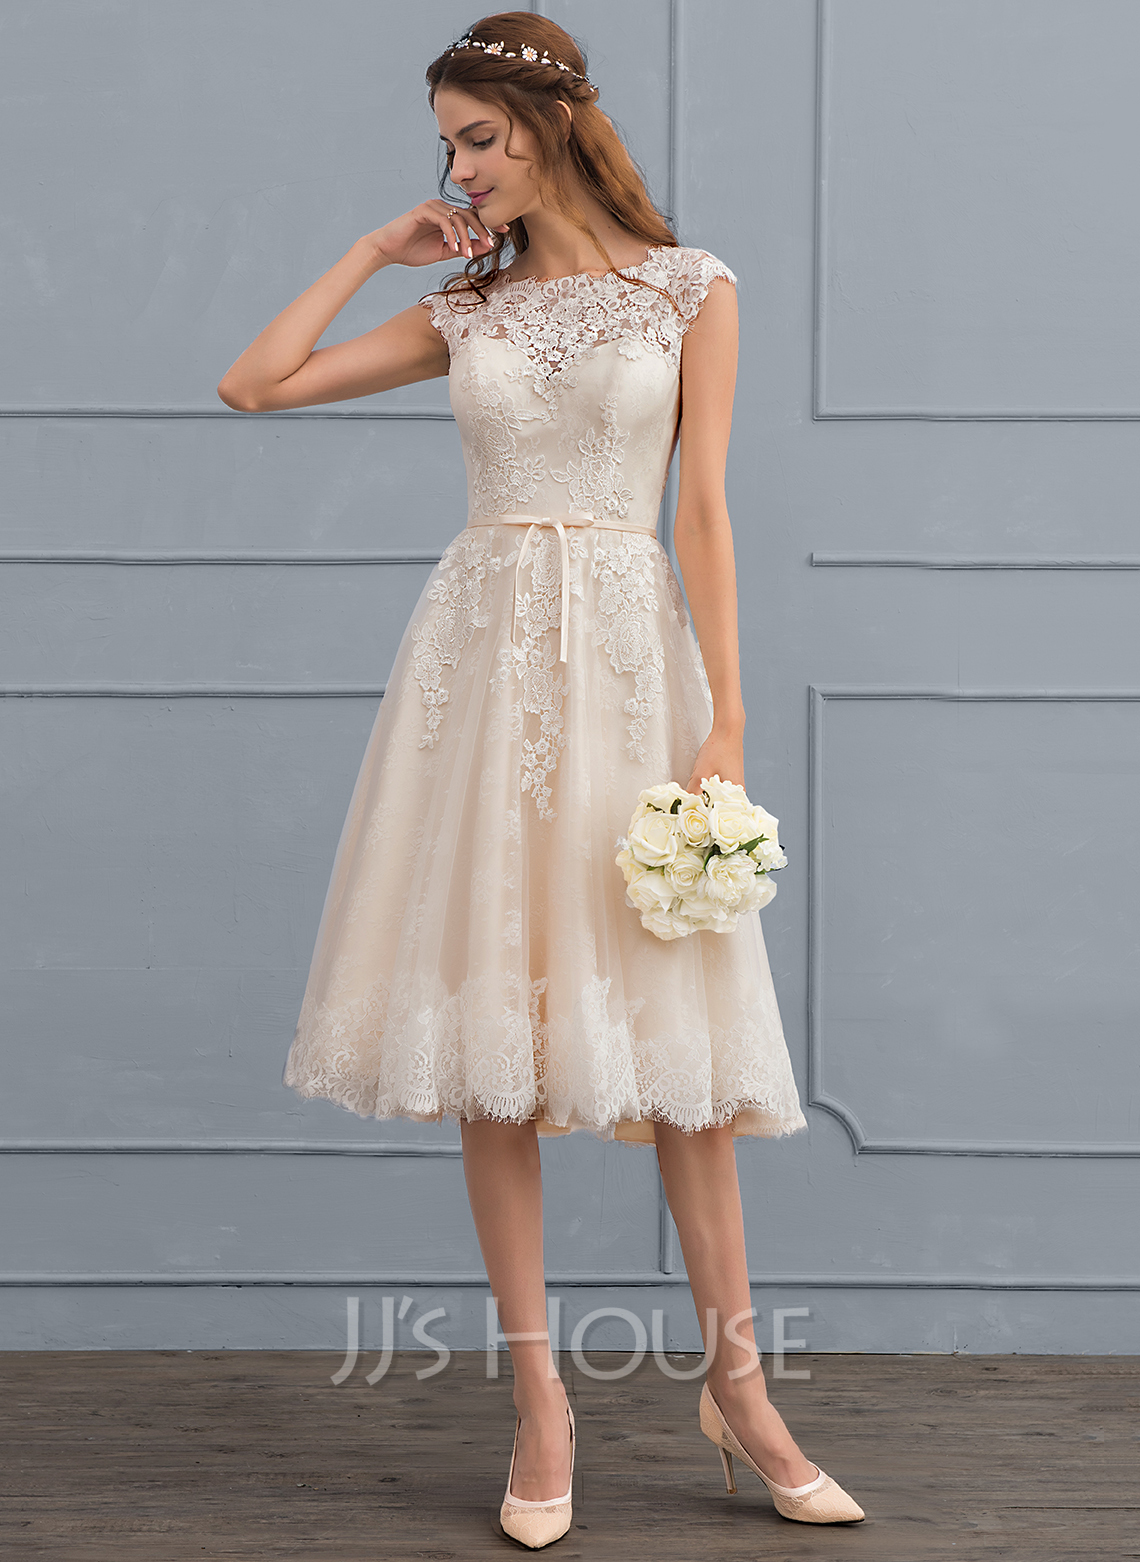 Short white wedding dress jjshouse a lineprincess scoop neck knee length tulle lace wedding dress with bow junglespirit Images